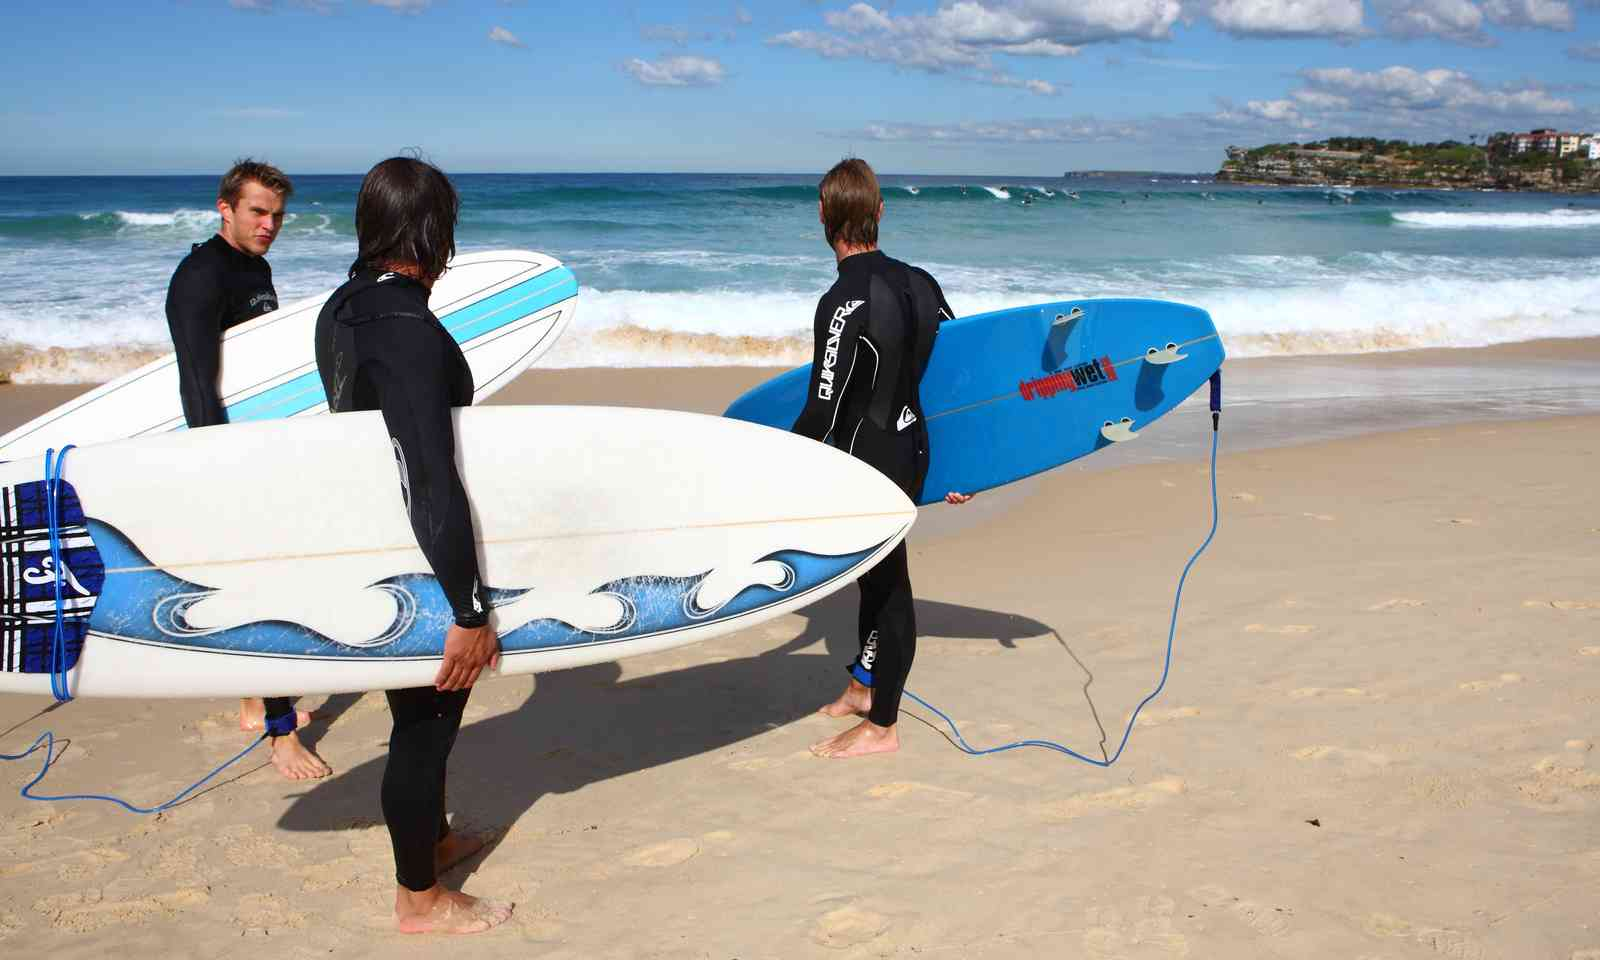 Young Aussies checking out the surf (Dreamstime)